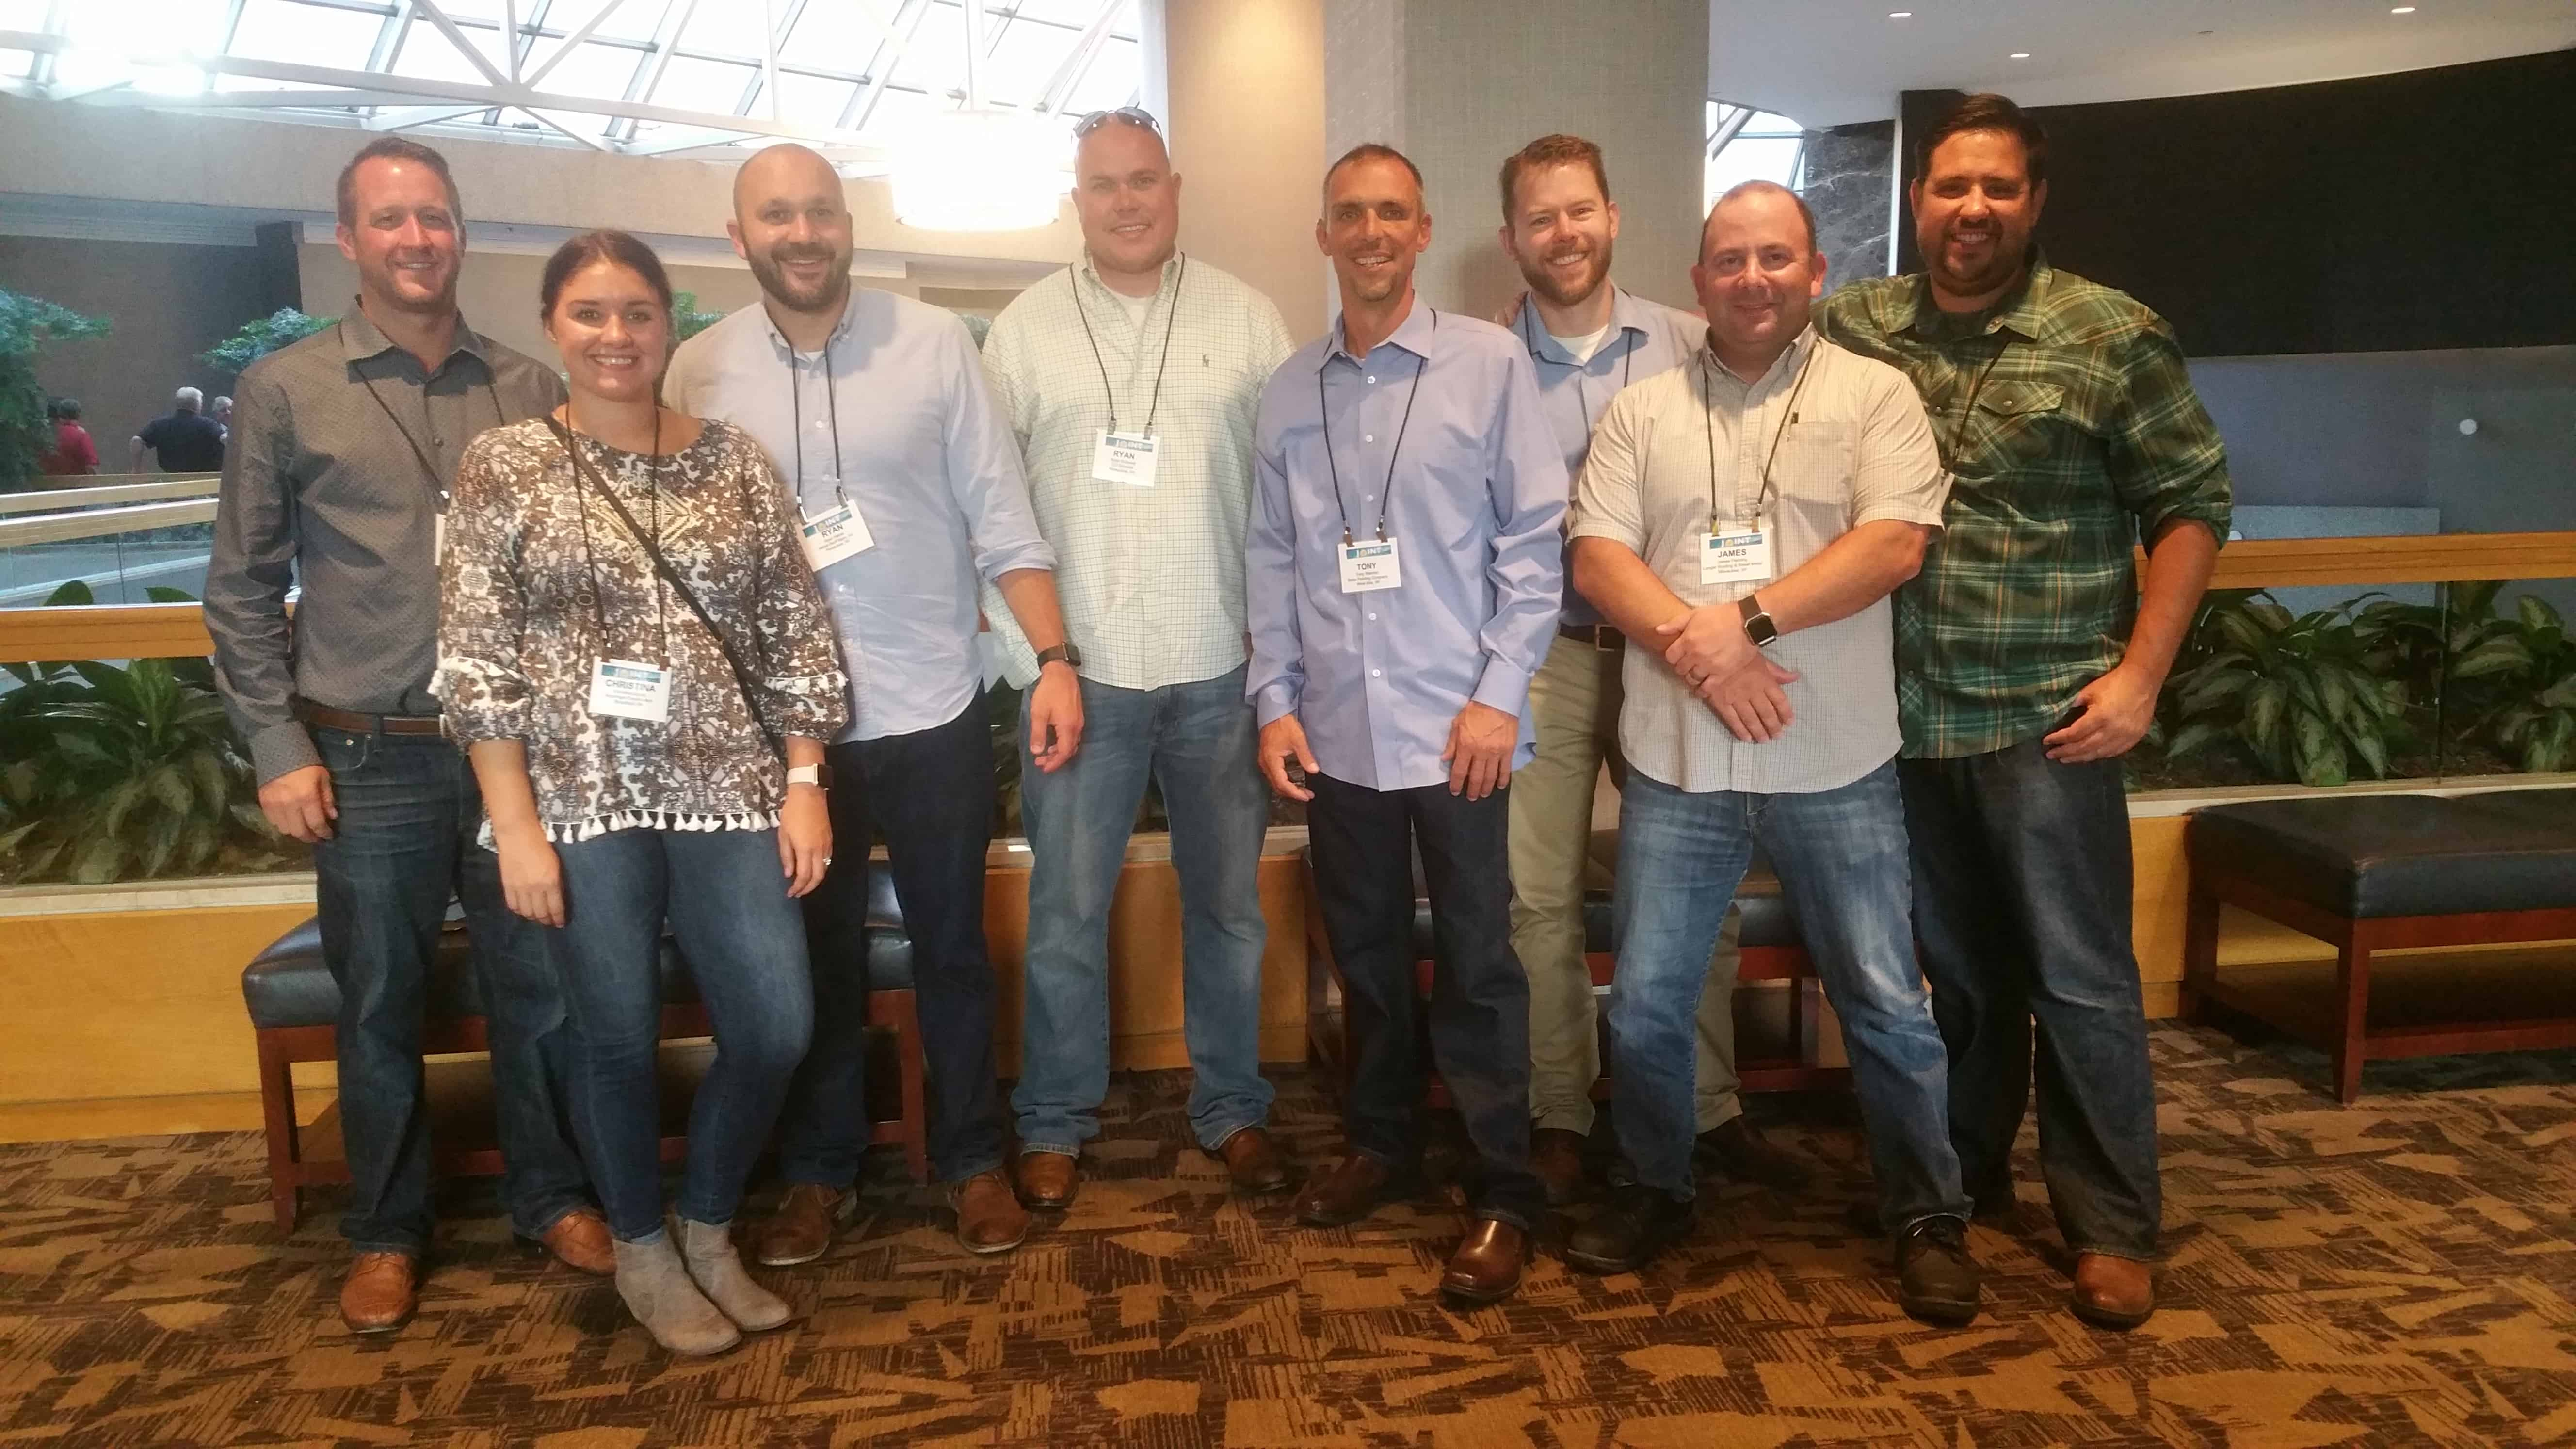 CLC Leaders Attend Leadership Development Conference in Washington D.C.